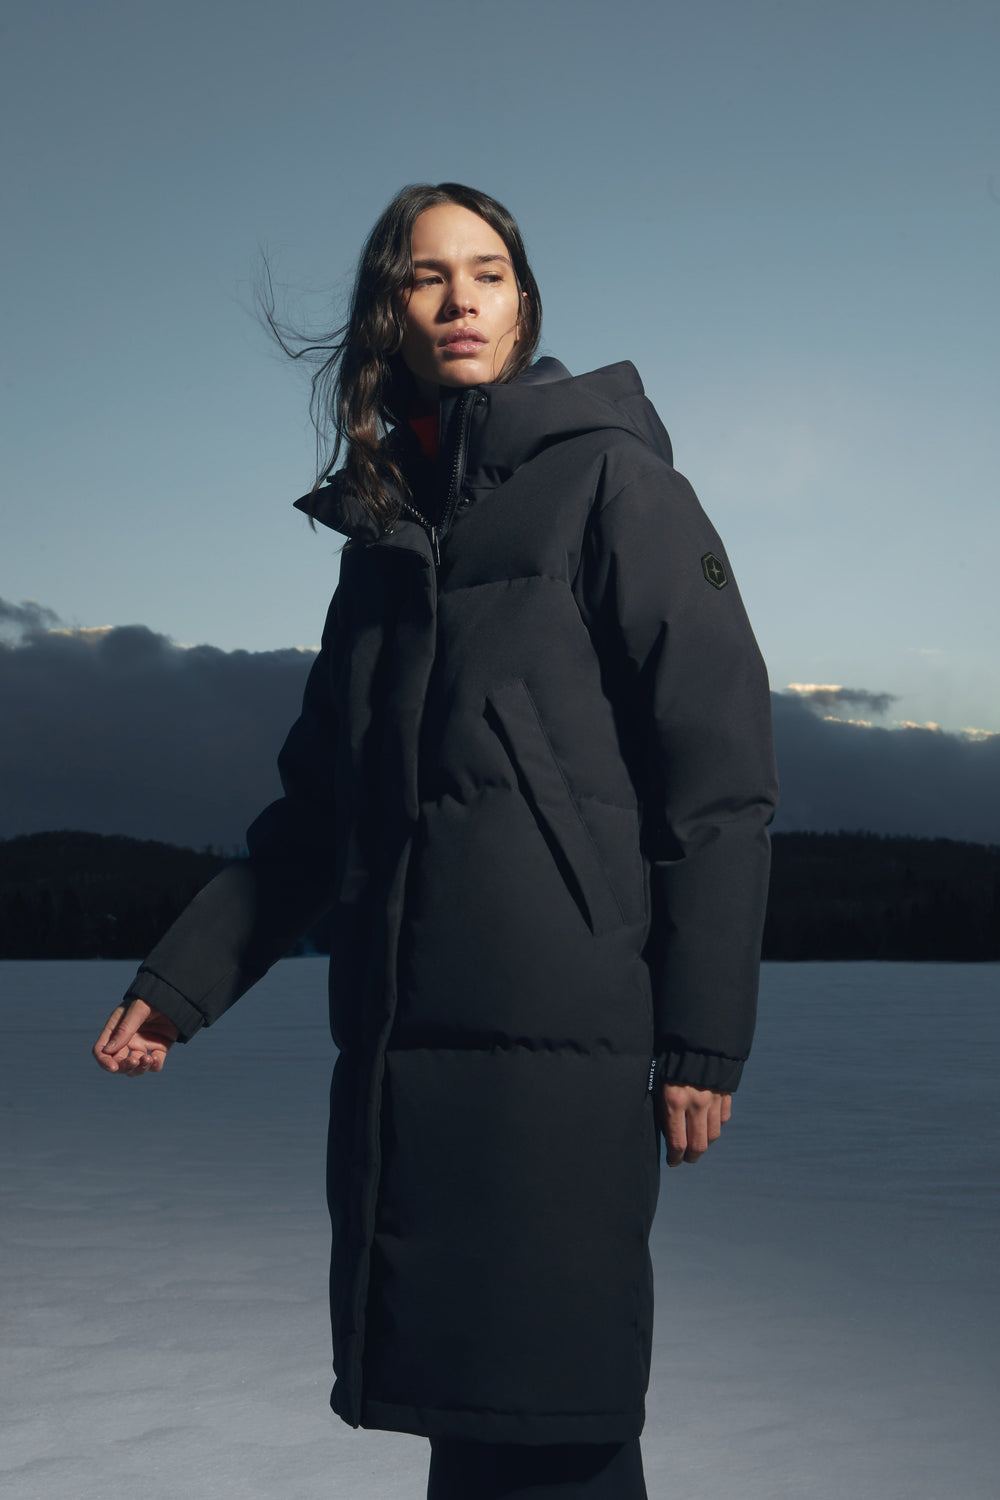 Quartz Co.'s Women Insulated Jackets Made in Canada with Recycled Textile Fabrics.